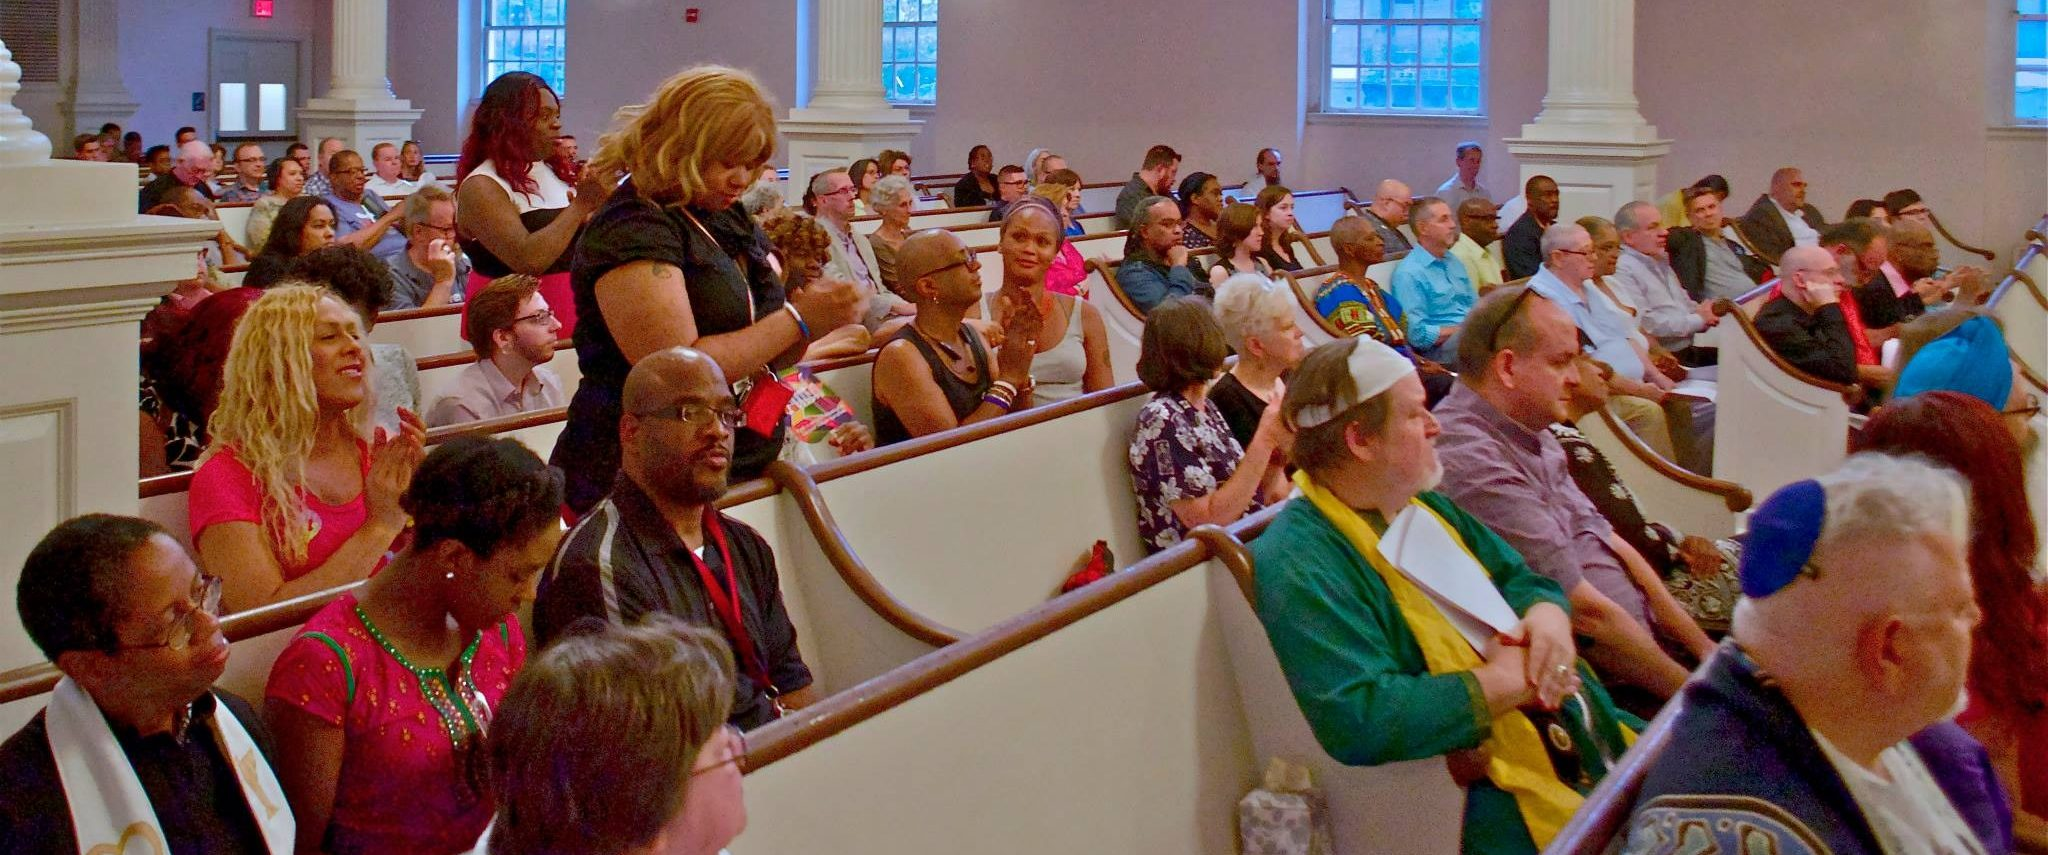 Volunteers Needed for Capital Pride Interfaith Choir